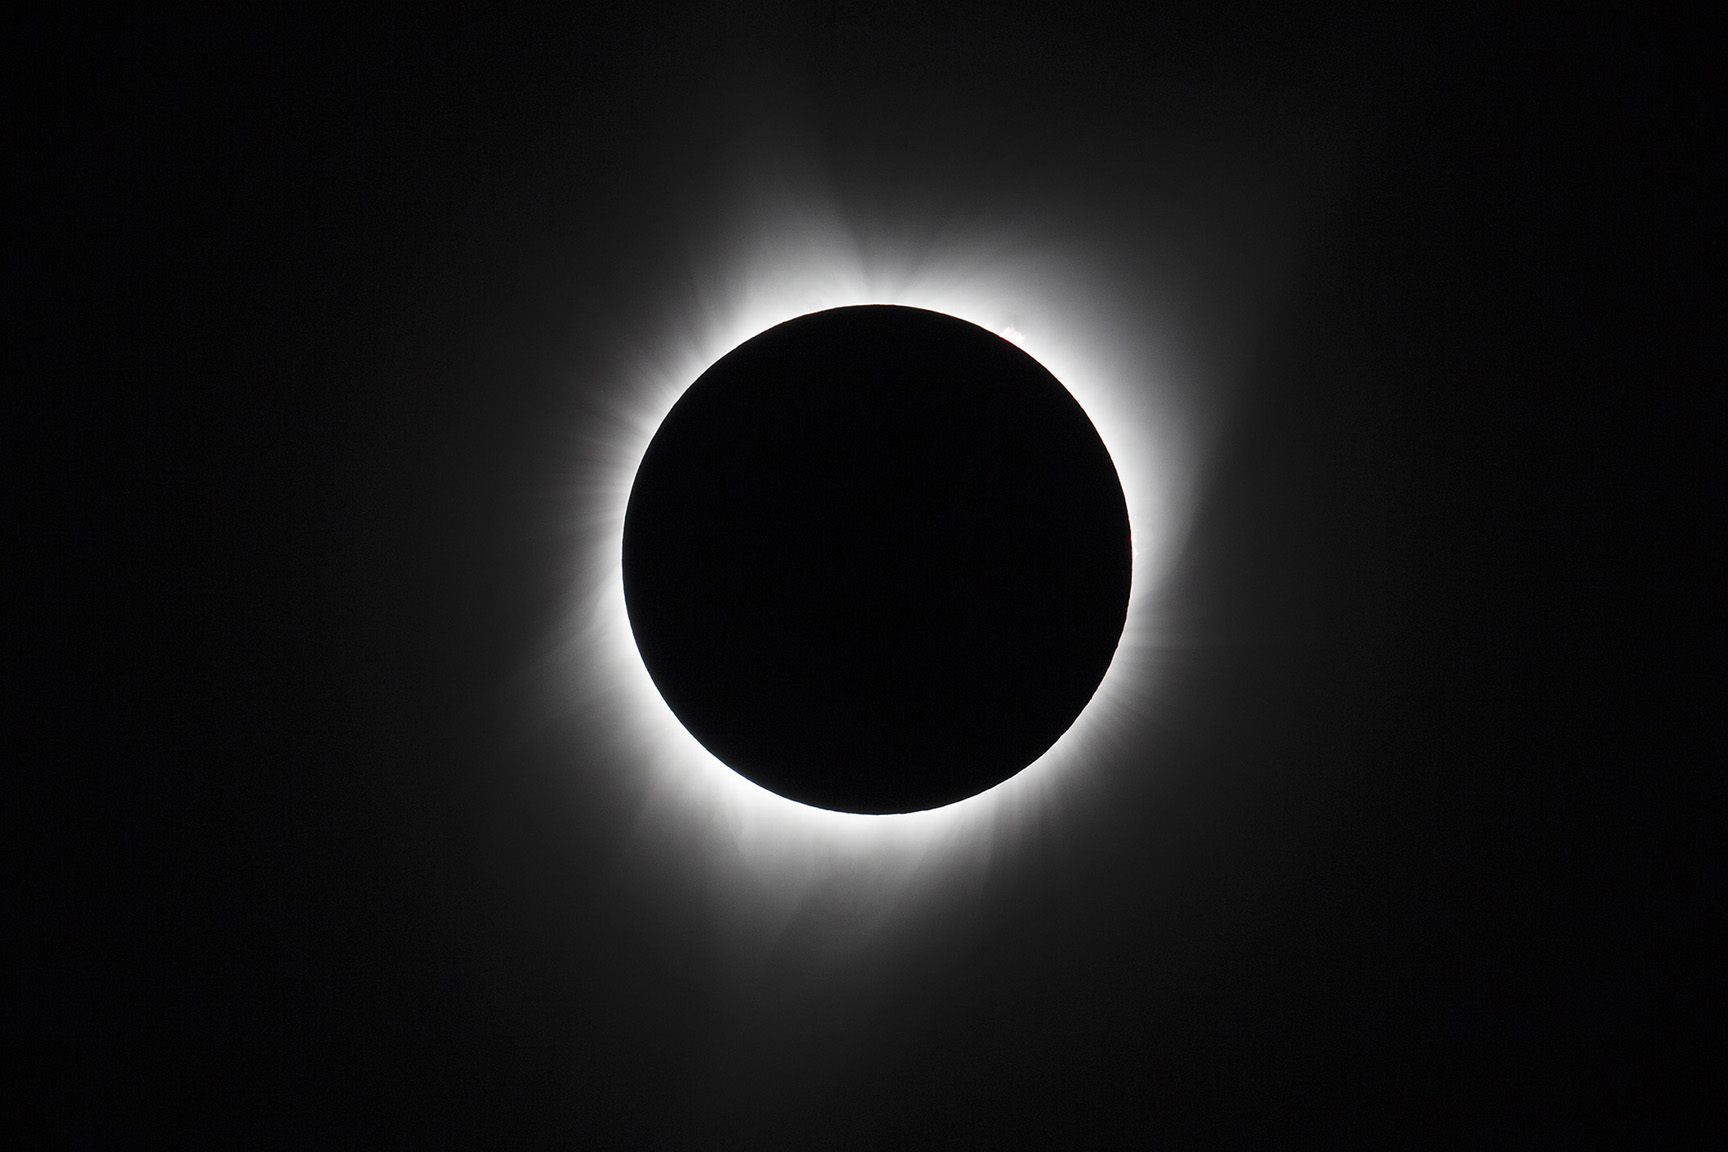 On Monday, August 21, 2017, a total solar eclipse, frequently referred to as the {quote}Great American Eclipse{quote}, was visible within a band across the entire contiguous United States passing from the Pacific to the Atlantic coasts.